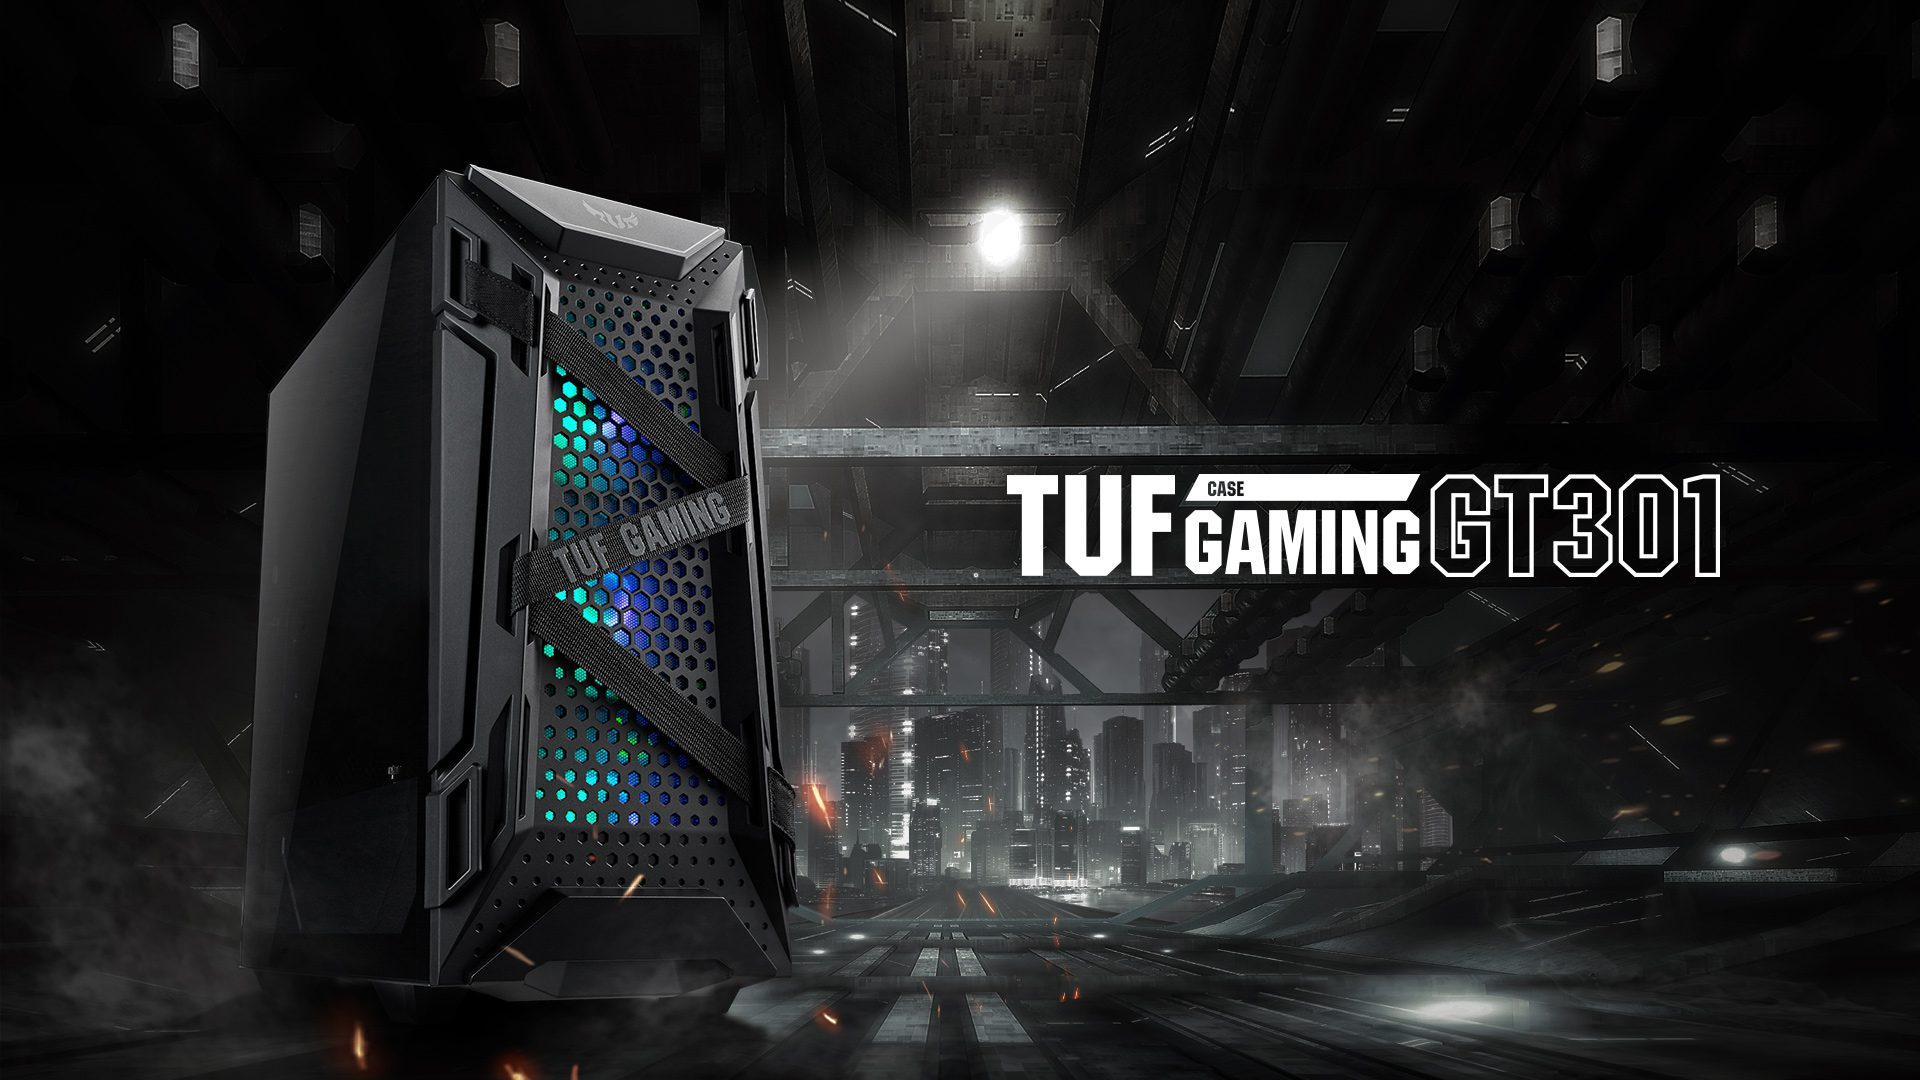 asus tuf gaming gt301 rgb tempered glass usb 3 2 mid tower kasa 4298 - ASUS TUF GAMING GT301 RGB Tempered Glass USB 3.2 Mid Tower Kasa